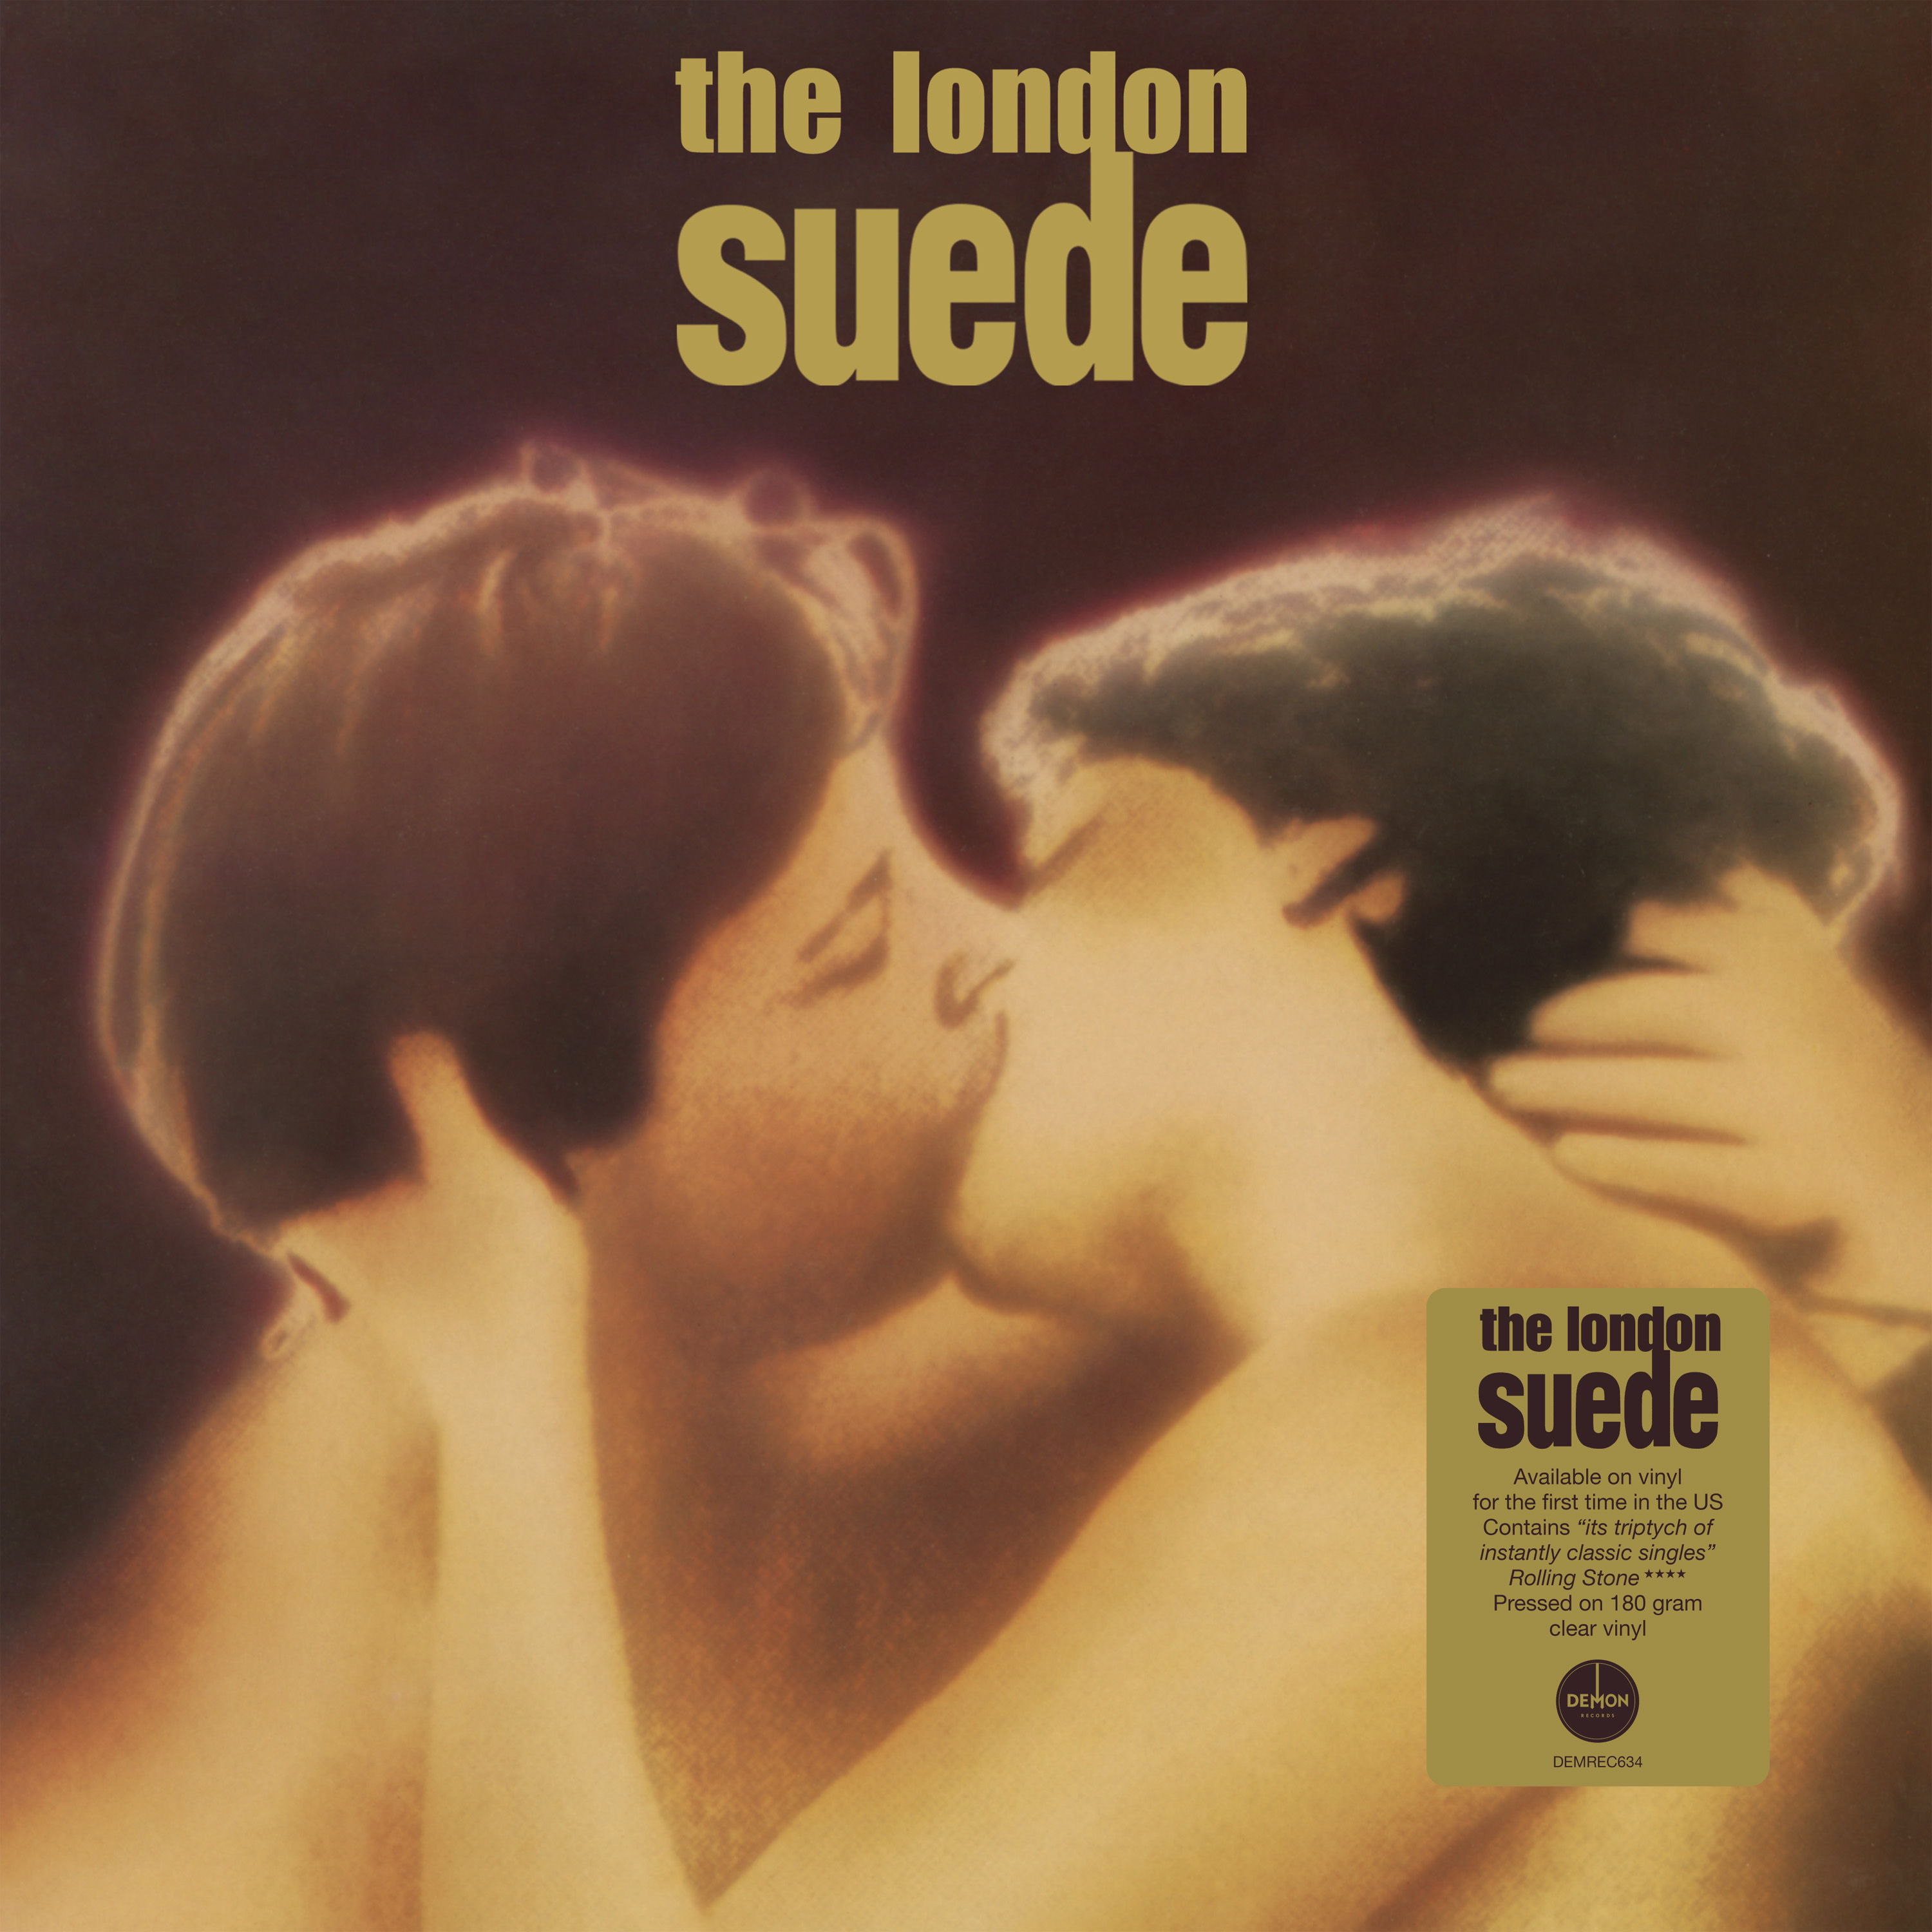 Suede (The London Suede) - The London Suede [RSD Drops Oct 2020]